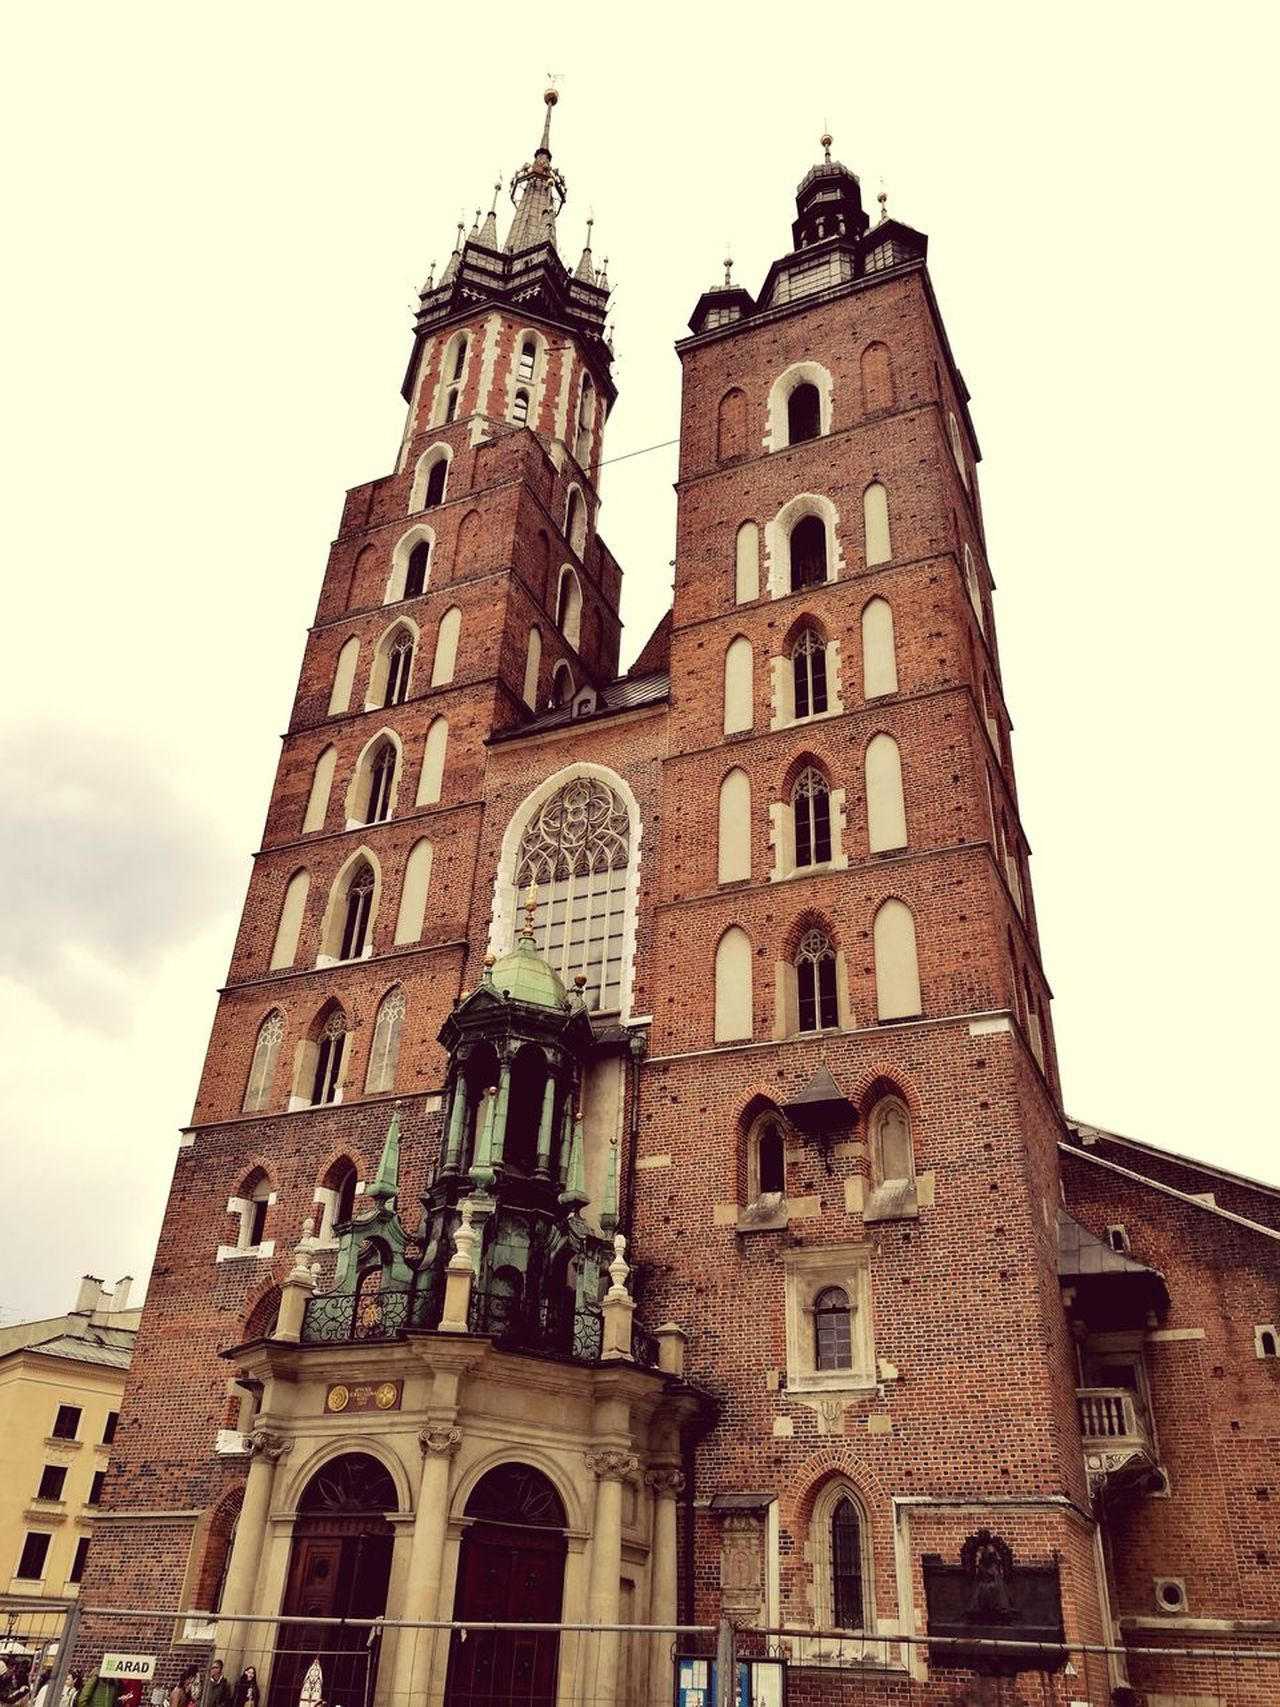 Architecture History Tower Travel Destinations Building Exterior Low Angle View Clock Built Structure Clock Tower Day Outdoors City No People Sky Clock Face Poland Kraków, Poland Main Square Old Buildings Old Town Katedral Krakowoldtown HuaweiP9 Neighborhood Map